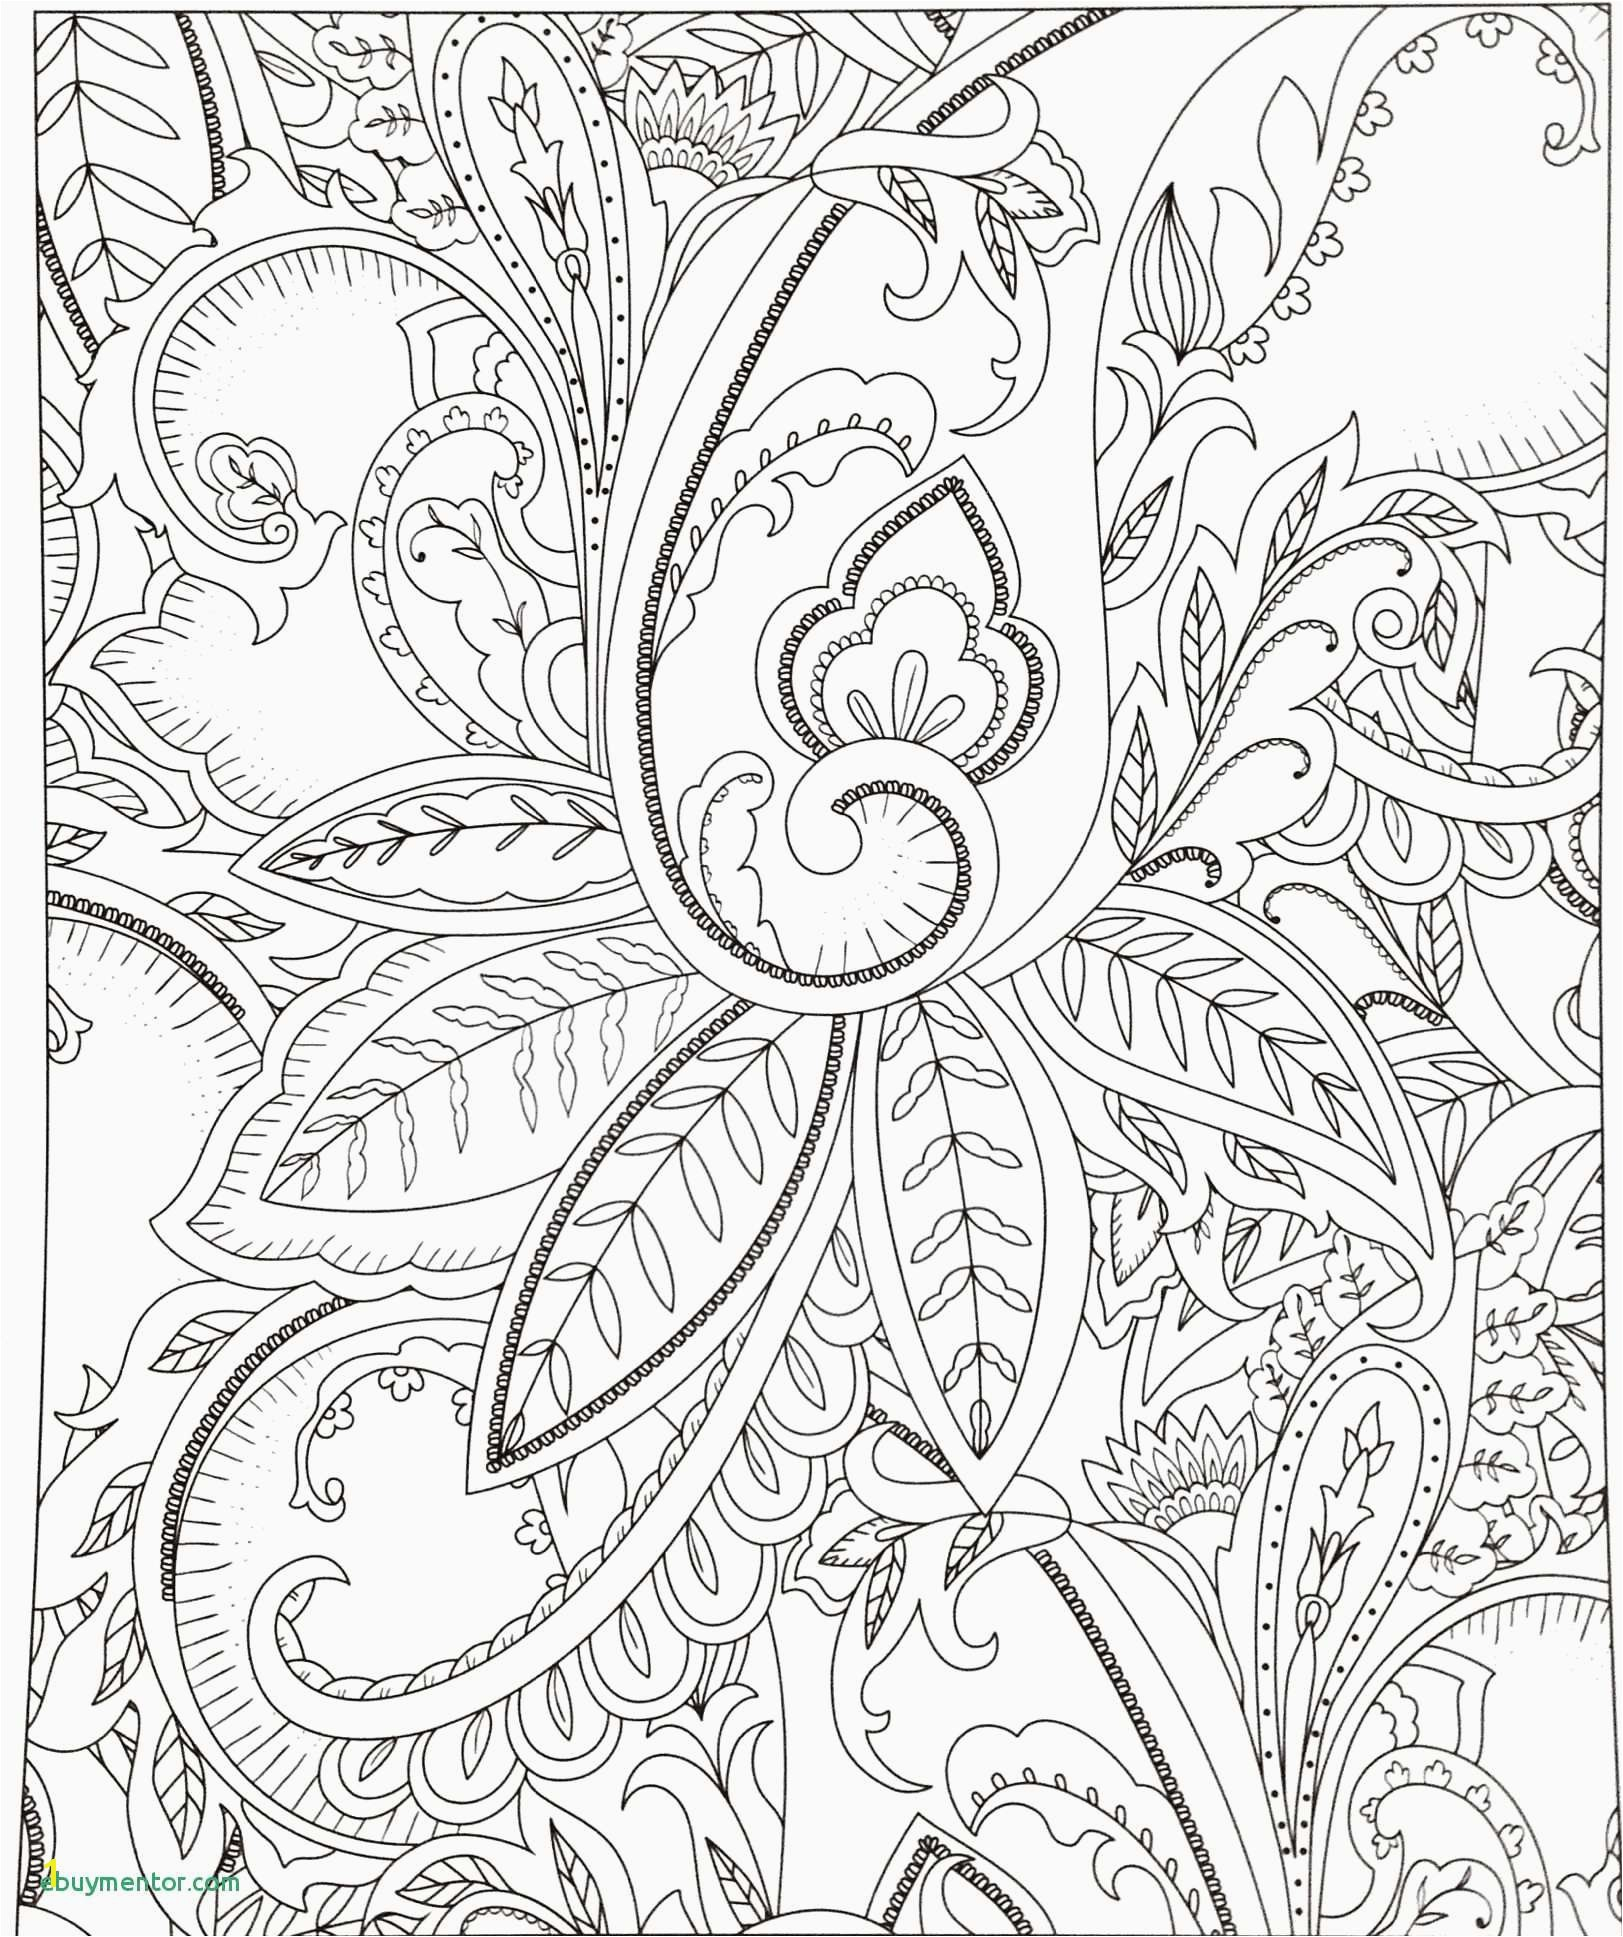 Nativity Coloring Pages for Adults Inspirational Free Christmas Coloring Pages Printables Cool Coloring Printables 0d